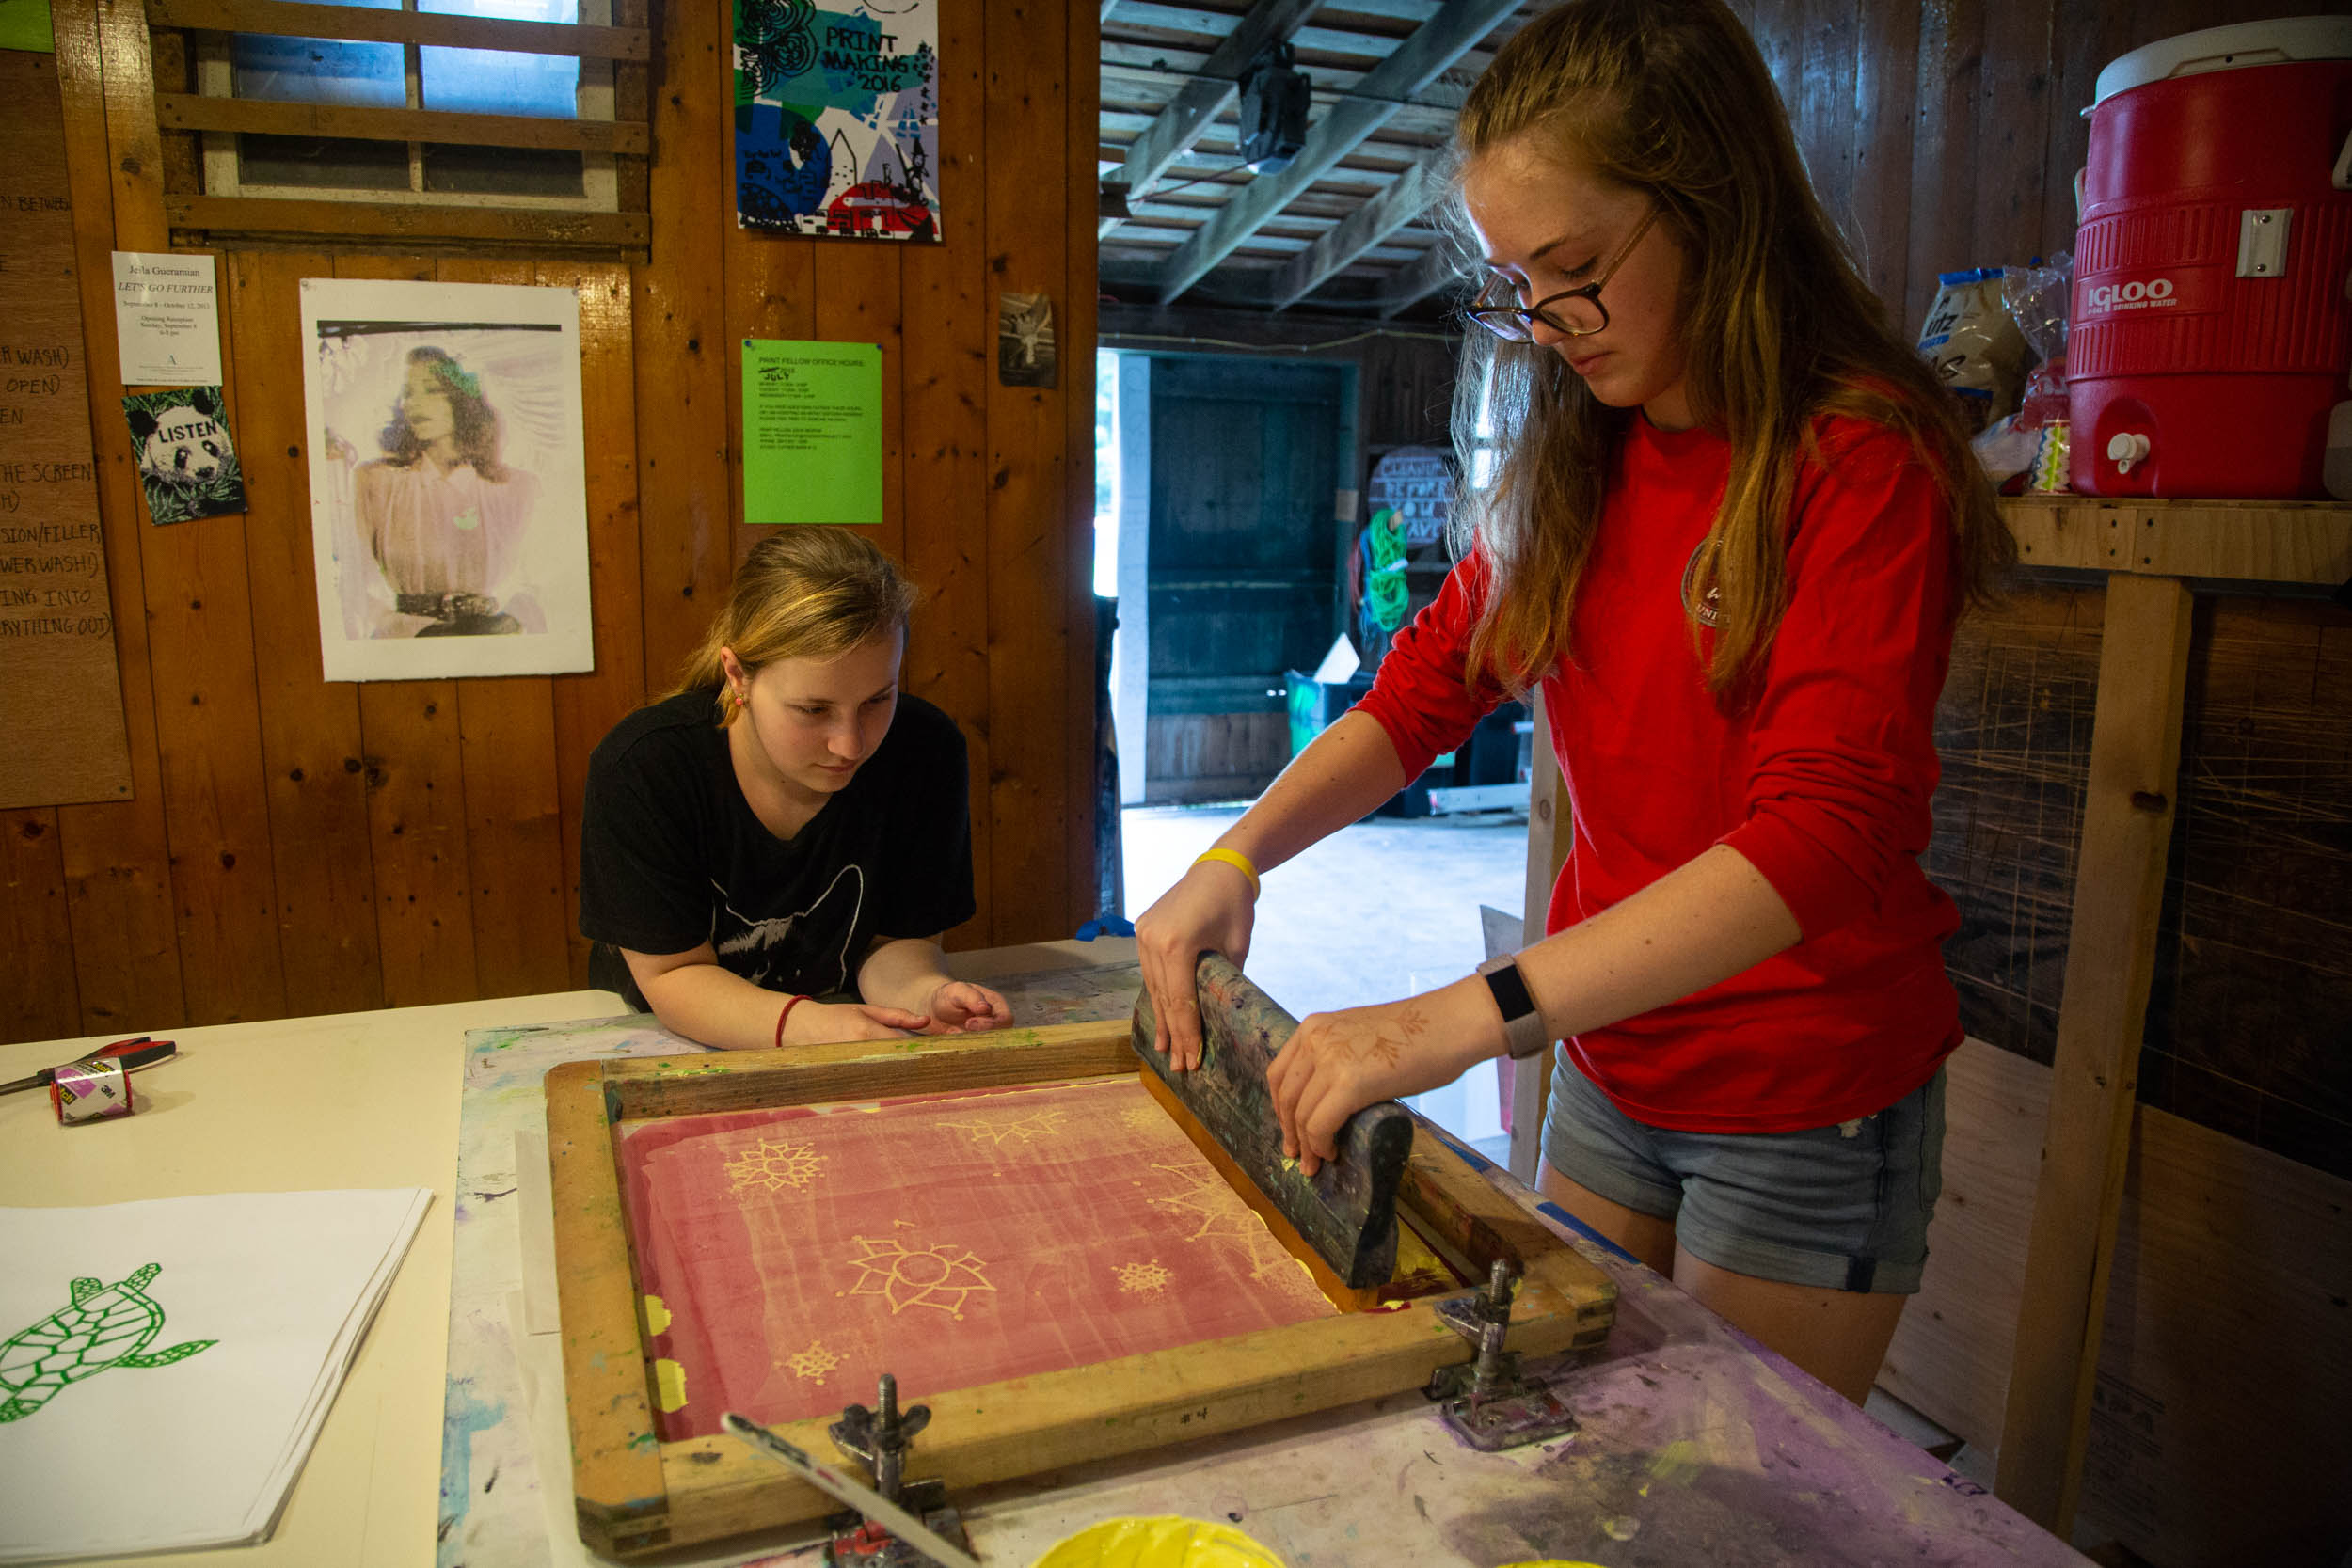 wassaic-project-education-teen-screenprinting-camp-2018-08-16-14-07-16.jpg